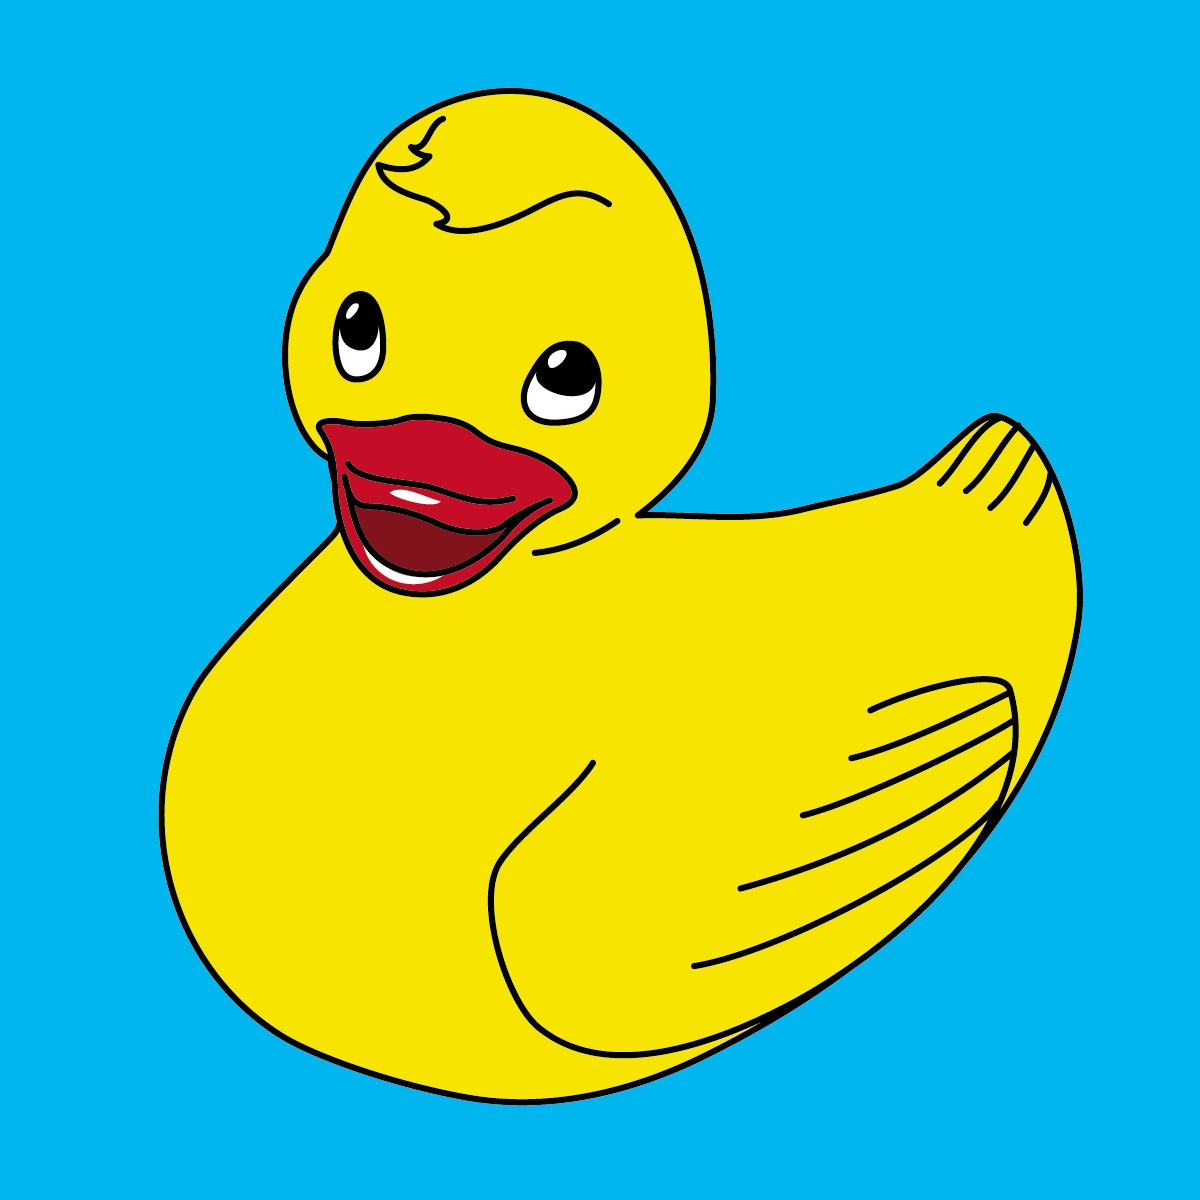 Free Rubber Ducky Image, Download Free Clip Art, Free Clip Art On - Free Duck Printables